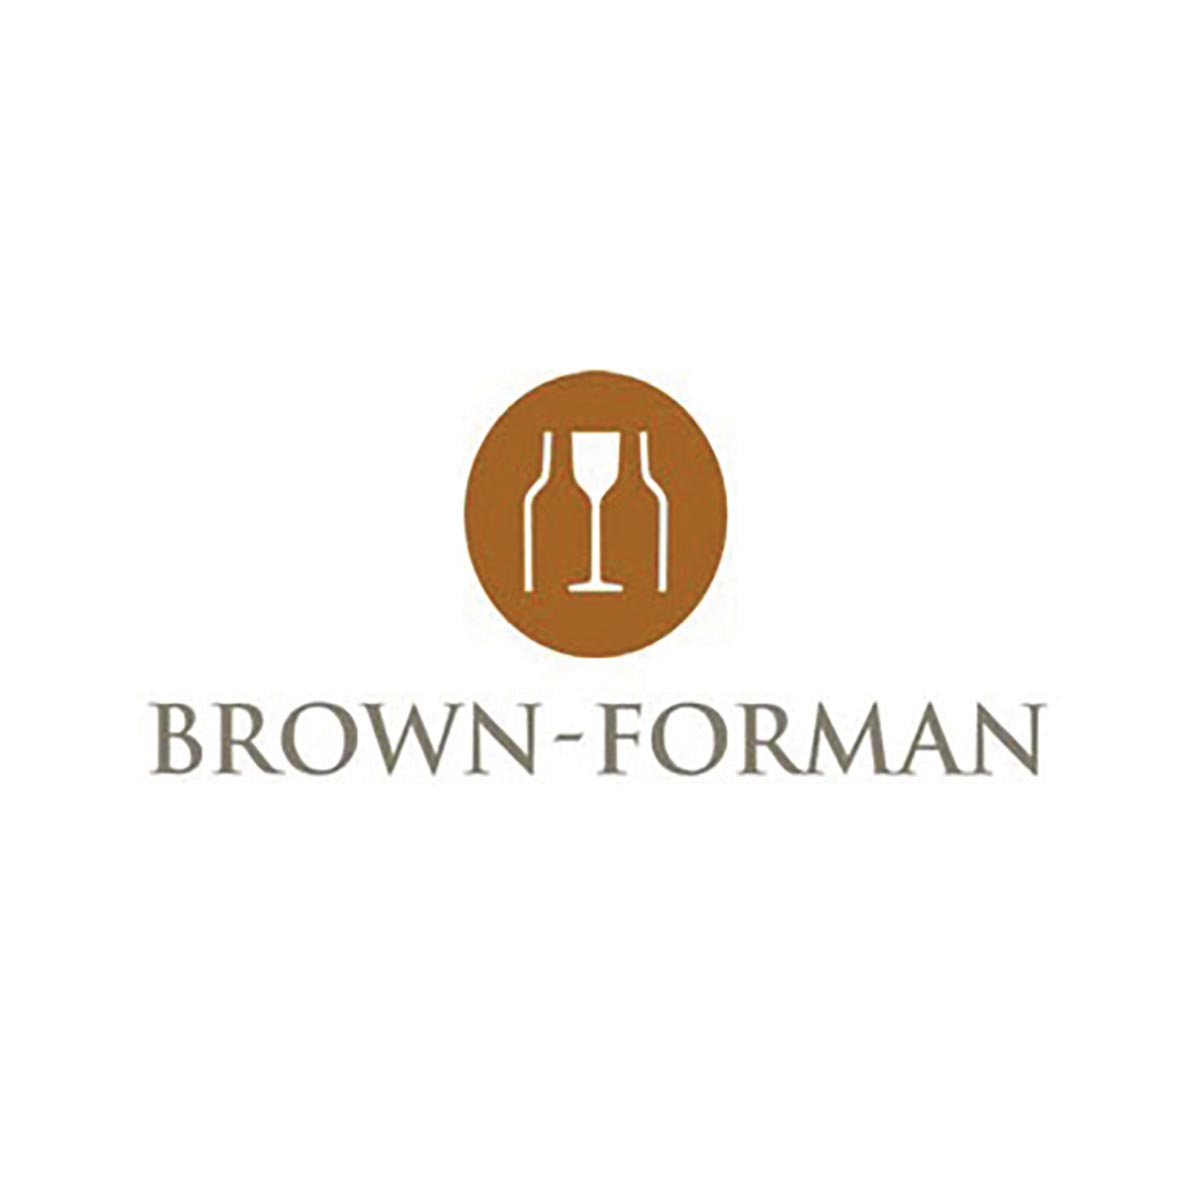 Brown-Forman Announces Changes to Executive Team